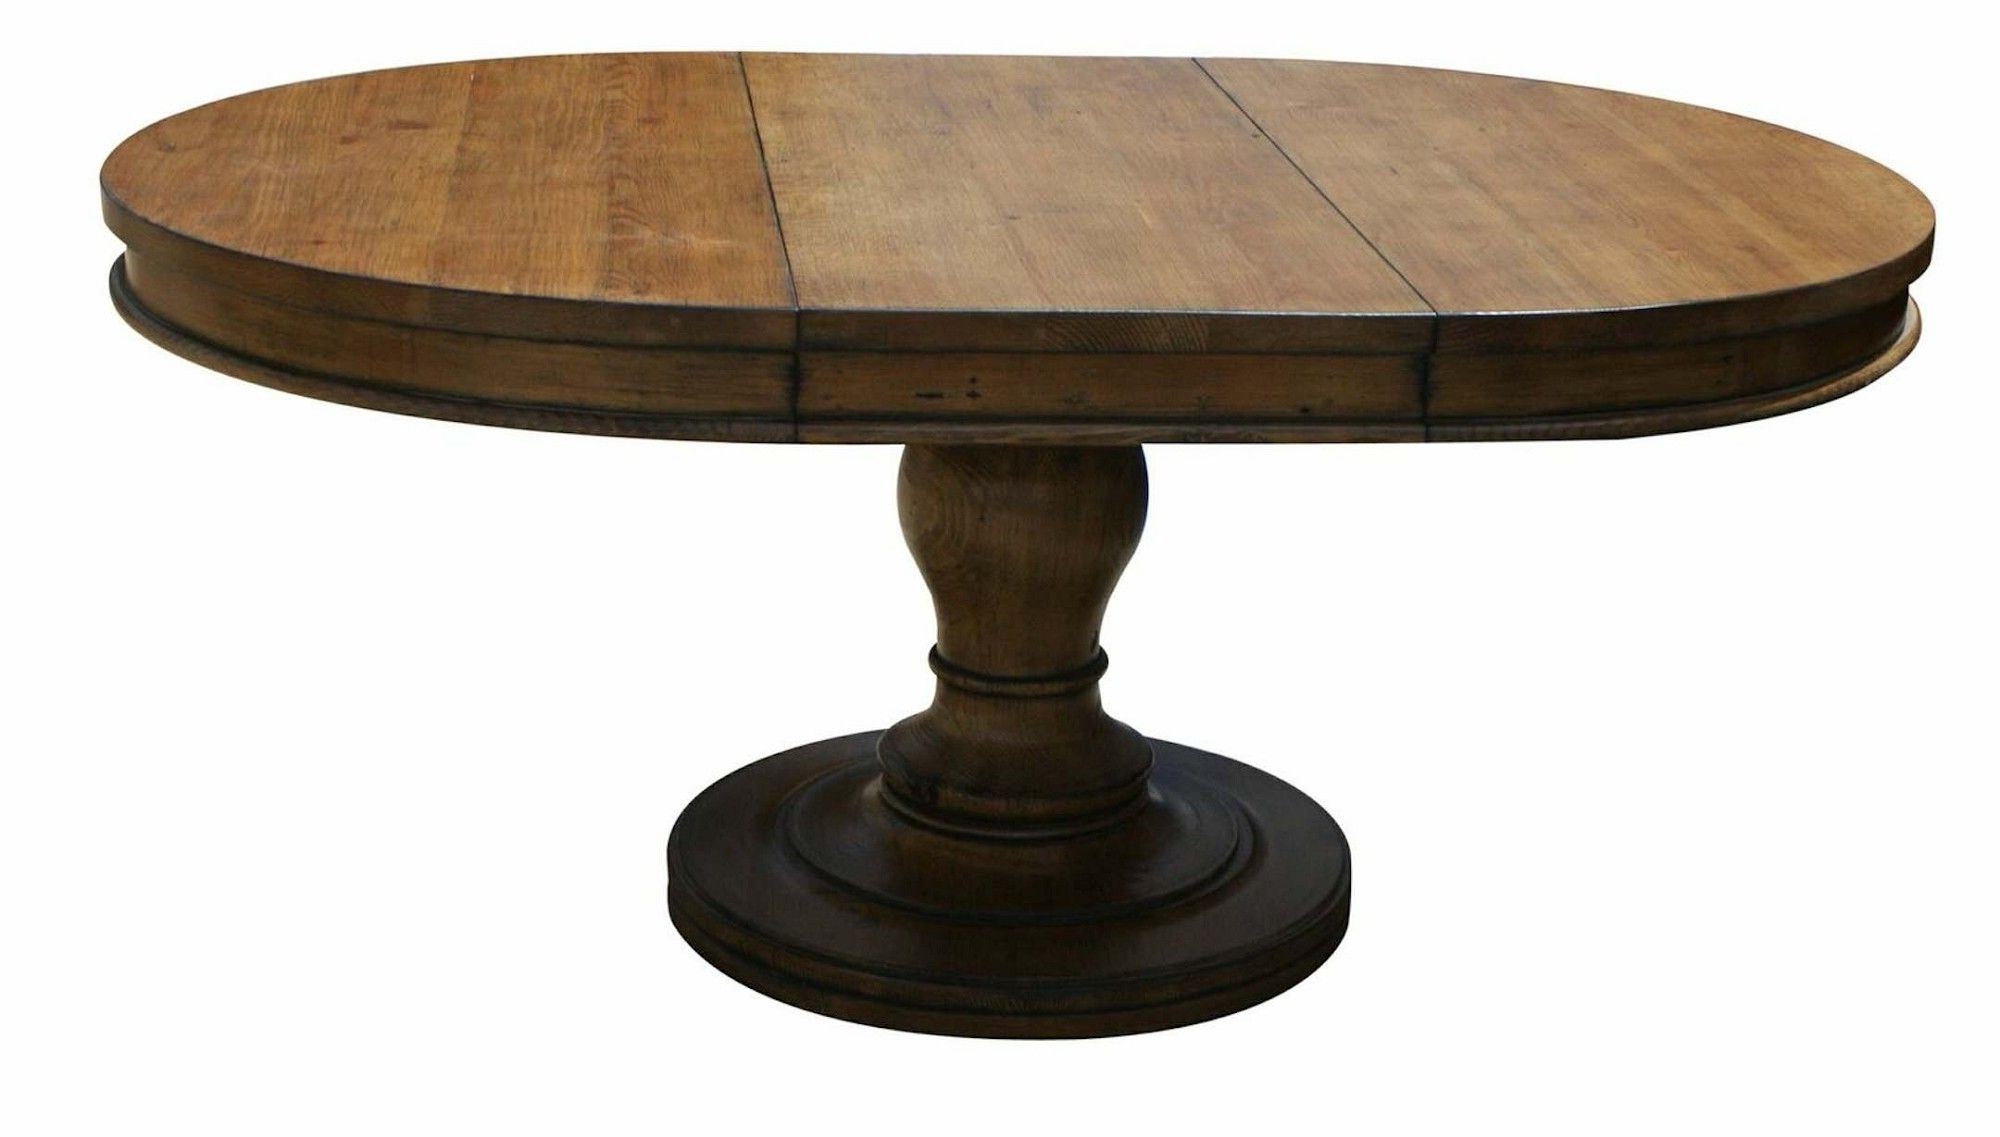 Oval Reclaimed Wood Dining Tables With Regard To Most Popular Appealing Oval Brown Lacquered Extendable Teak Wood Dining Table (View 18 of 25)